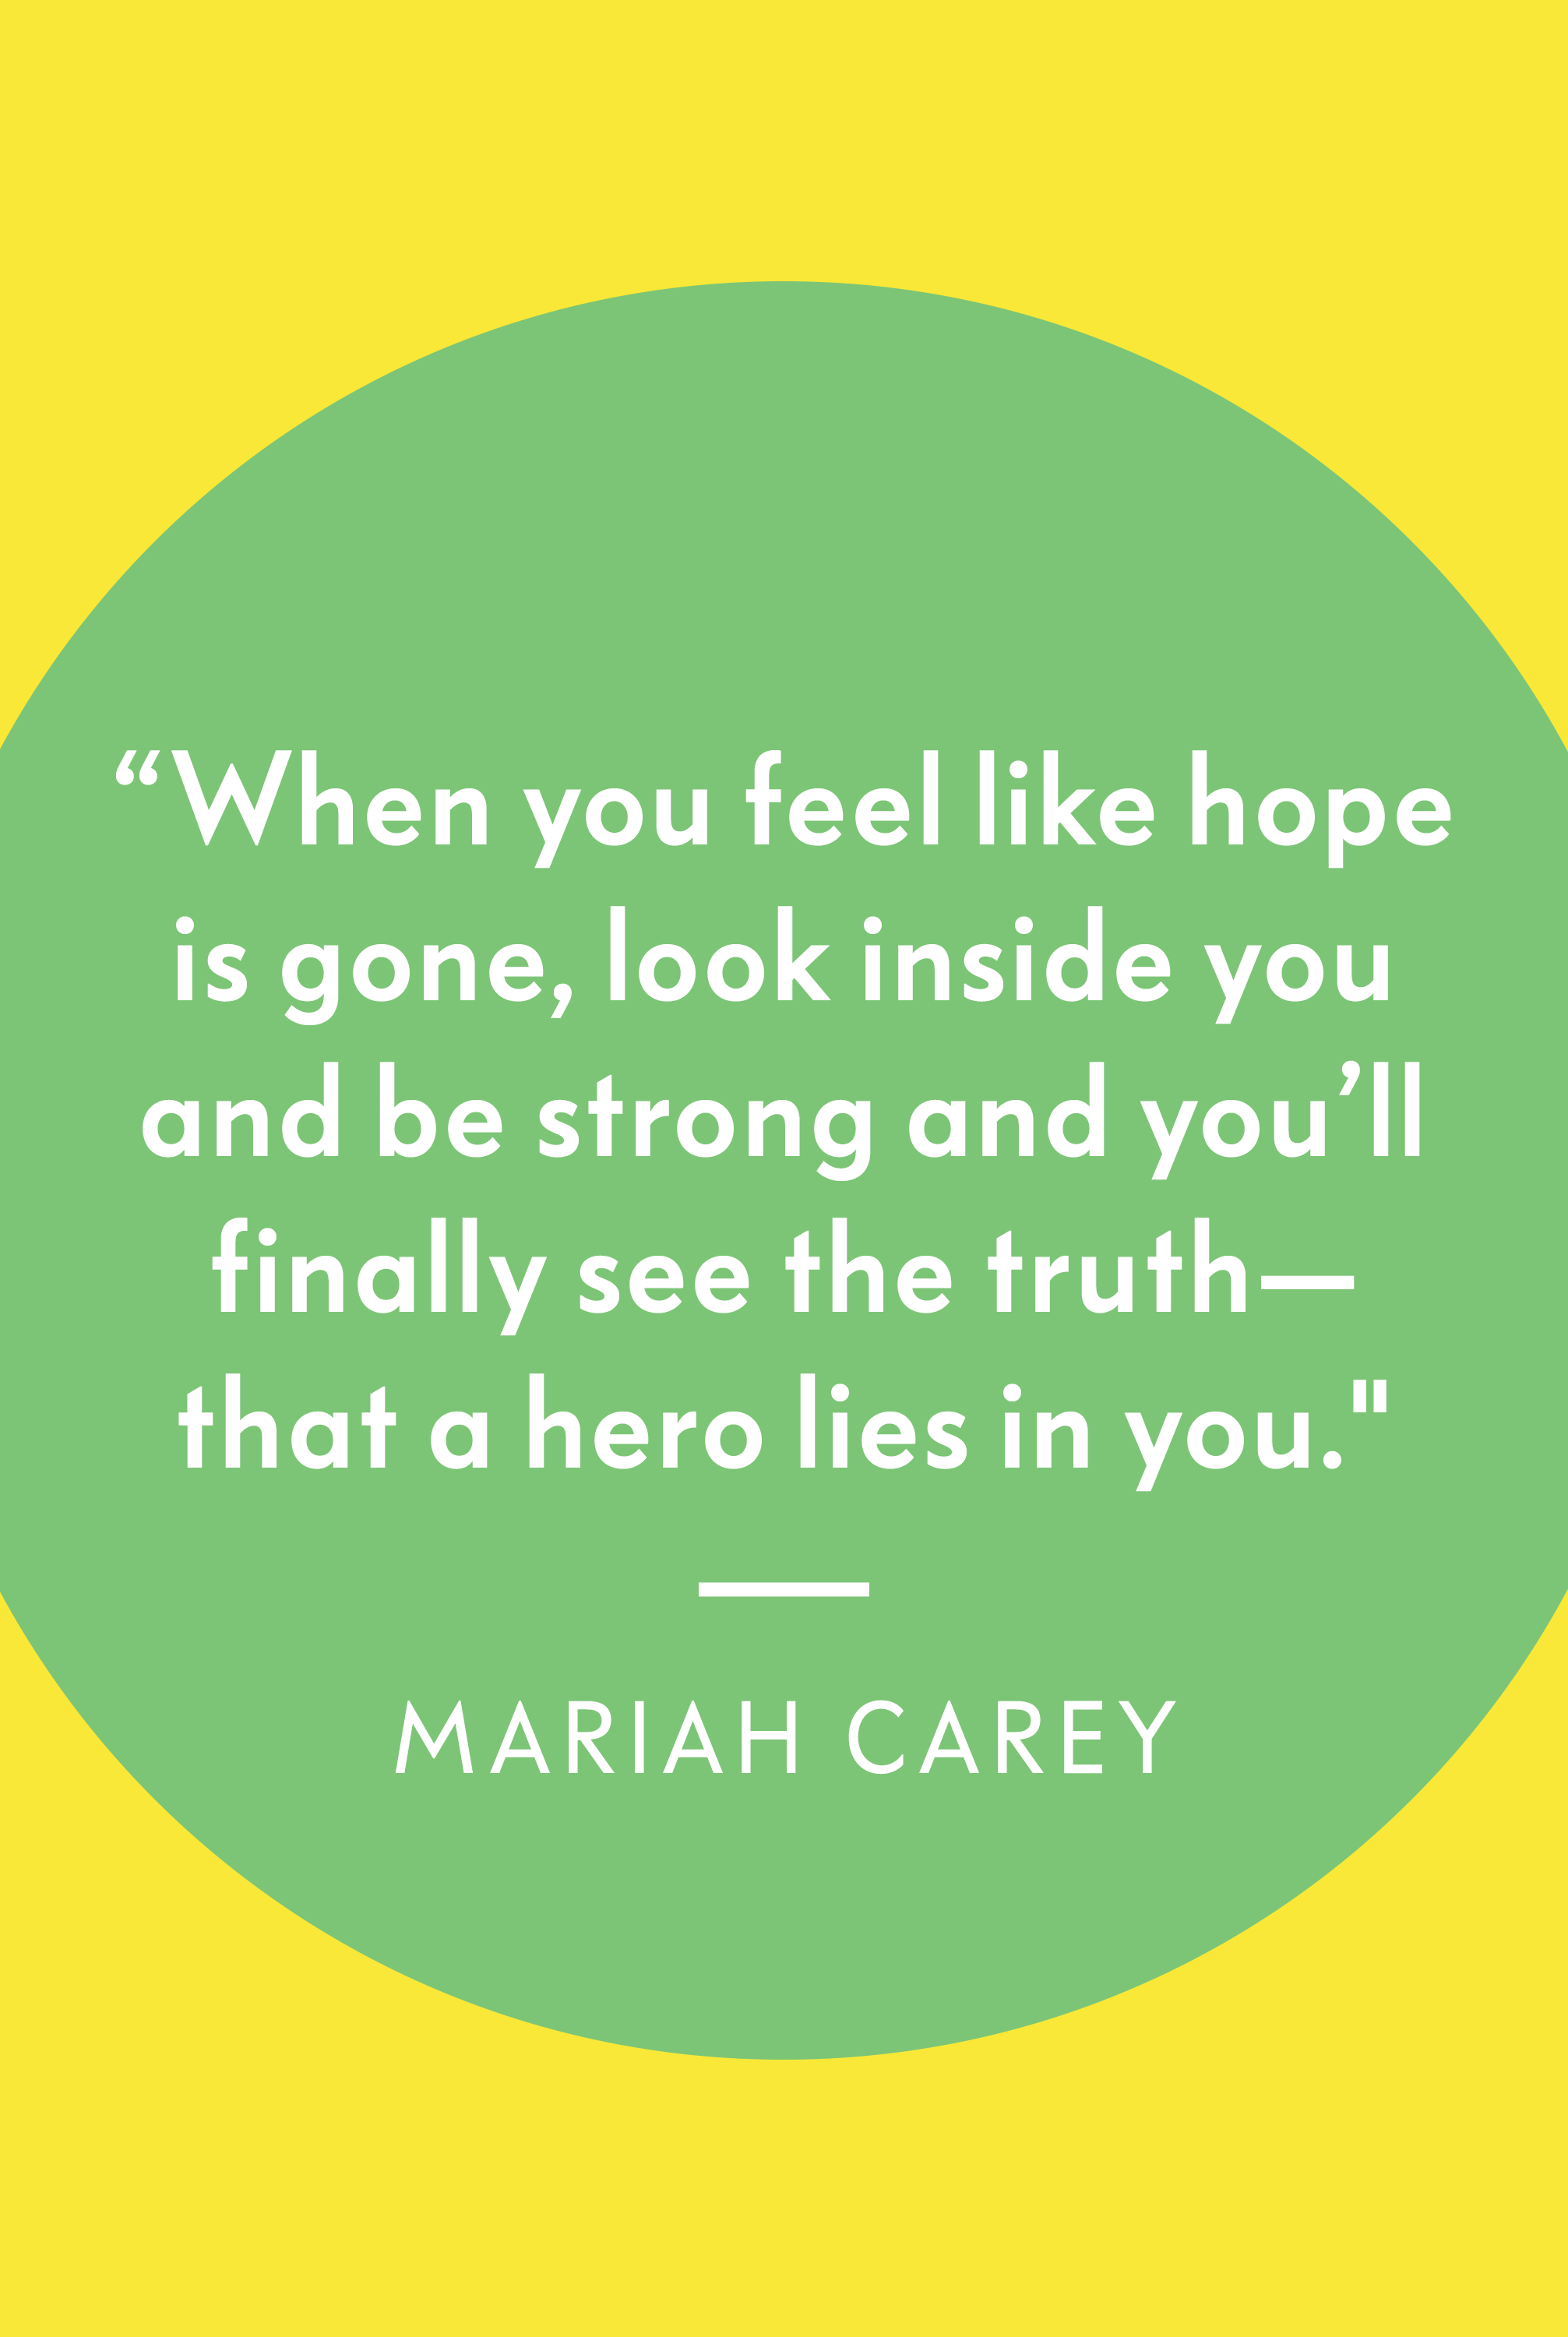 10 Quotes That Inspire You To Never Give Up Hope